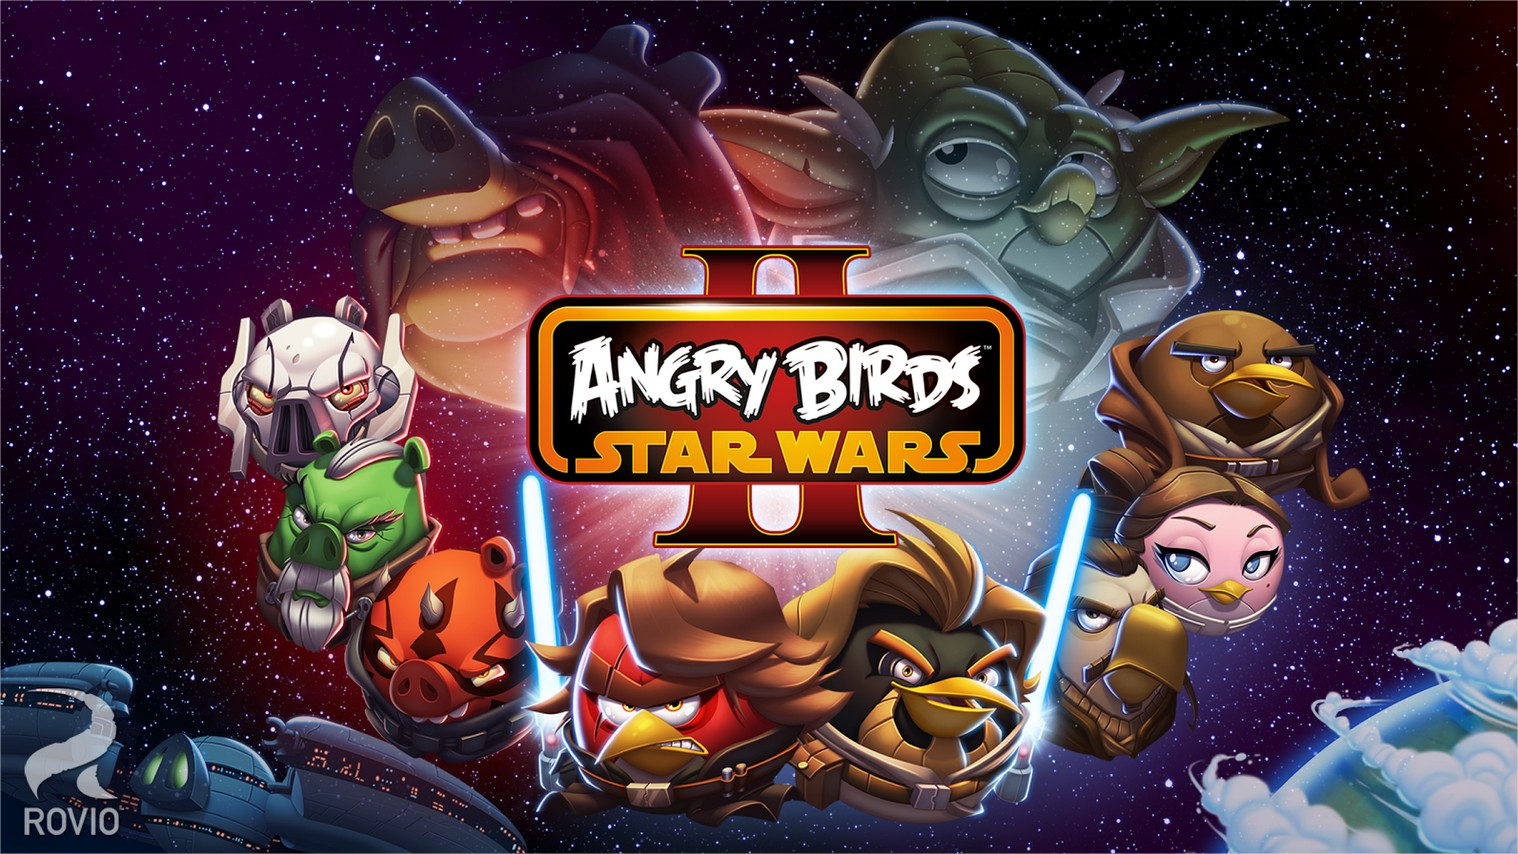 Angry-Birds-Star-Wars-II-android-france-01